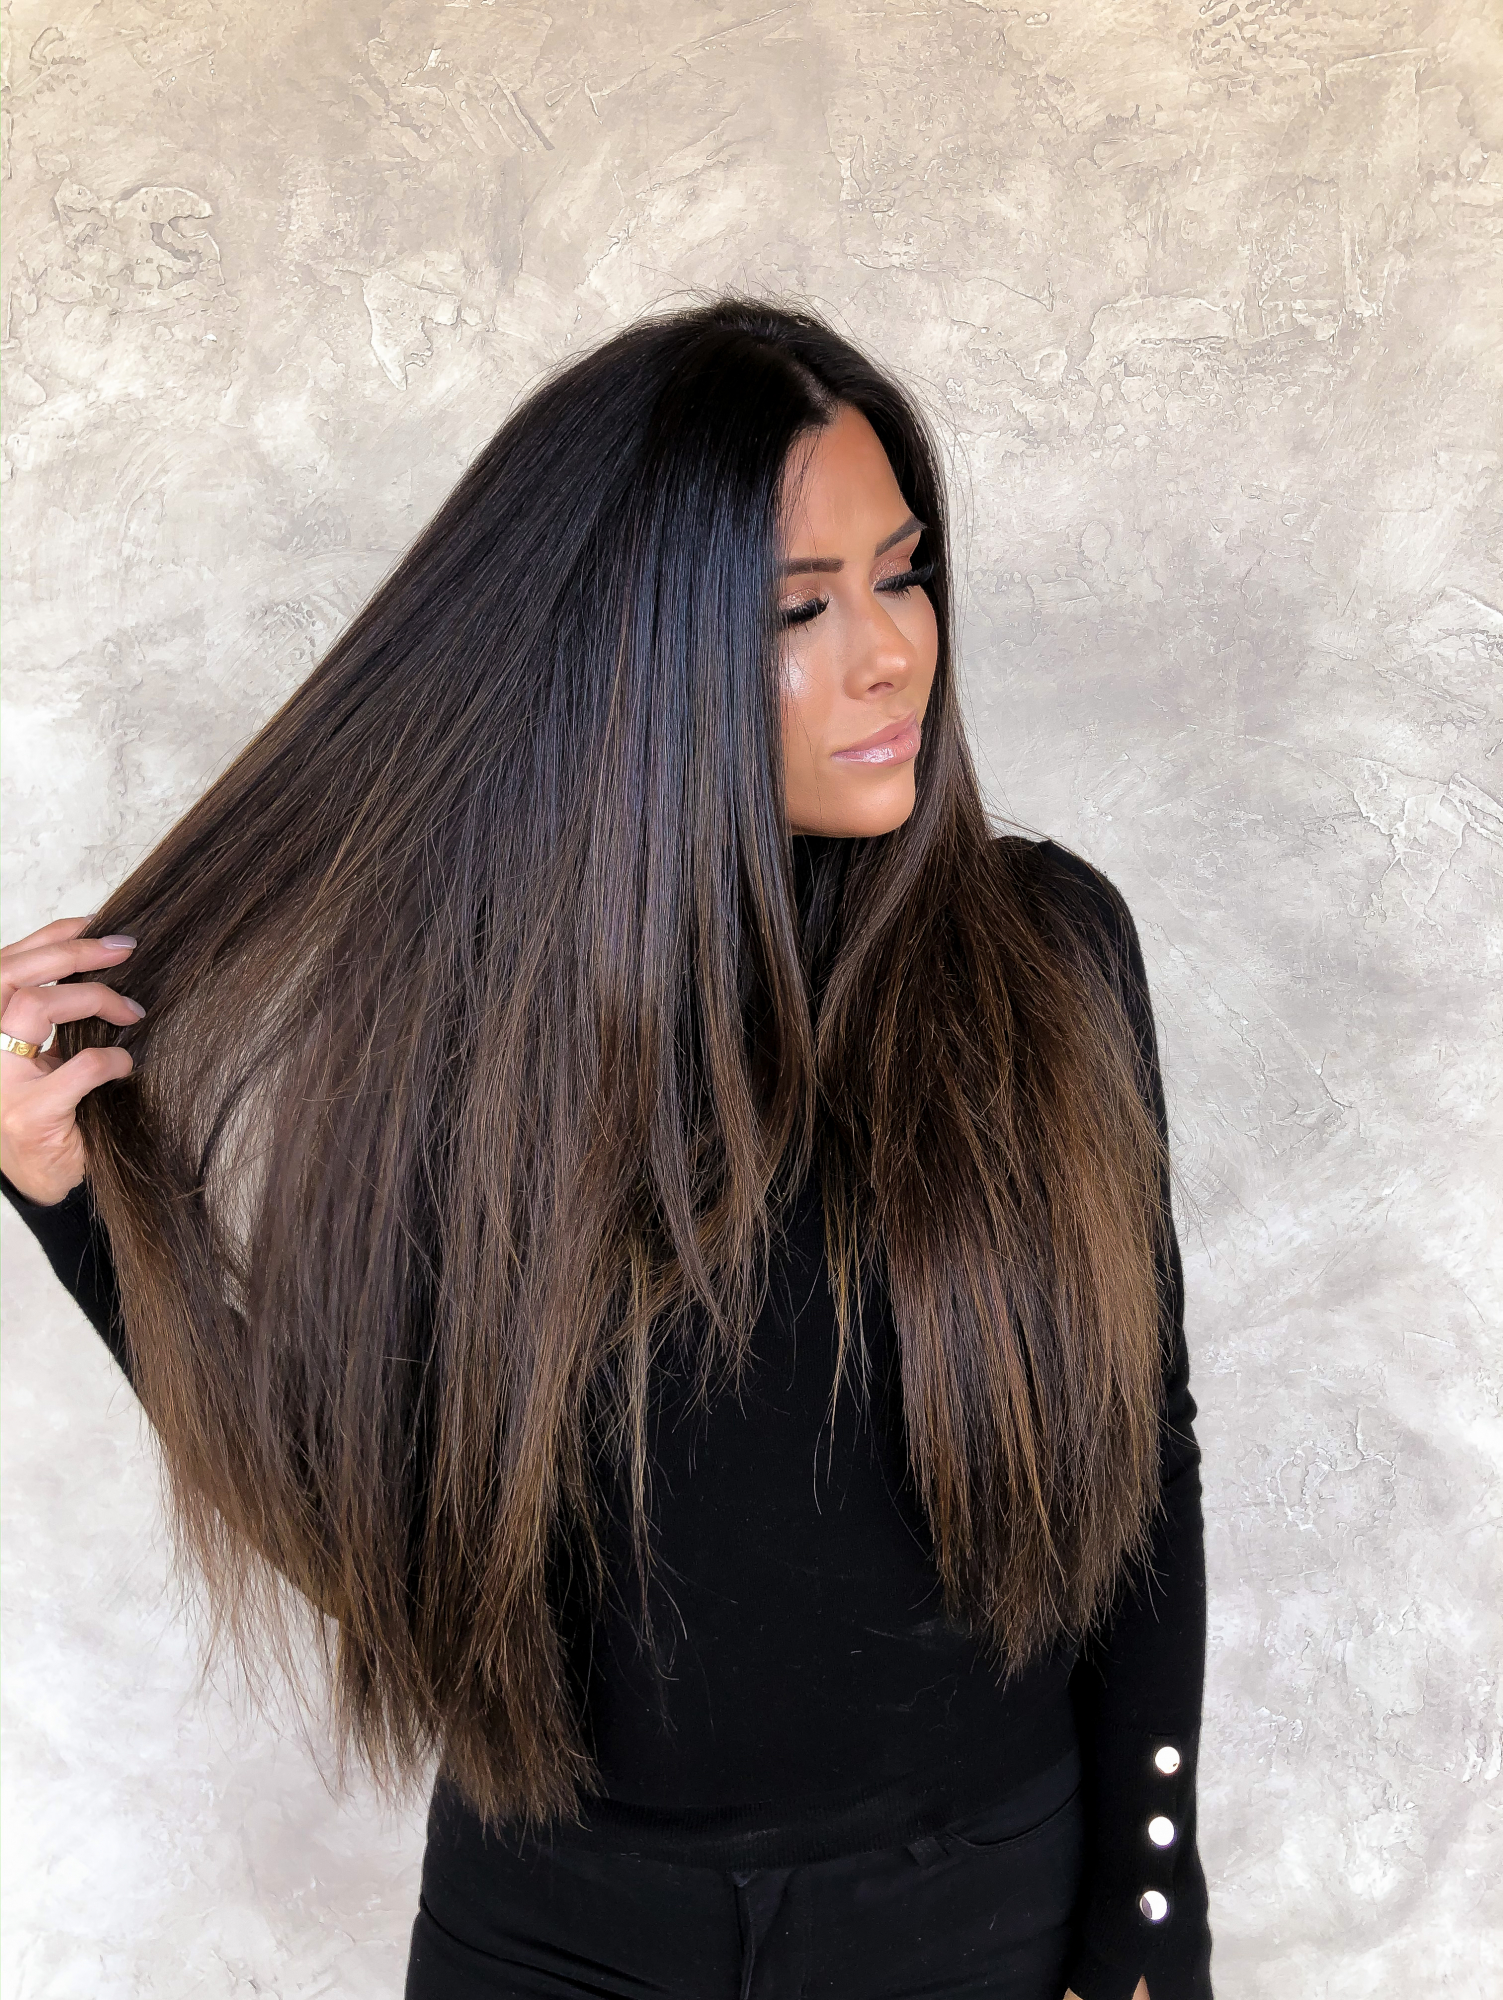 brunette balayage hair extensions, pinterest brunette balayage, Hand tied hair extensions | BEST HAIR PRODUCTS FOR 2019💁🏻‍♀️ || PART 1 by popular US beauty blog, The Sweetest Thing: image of a woman with brunette hair extensions.